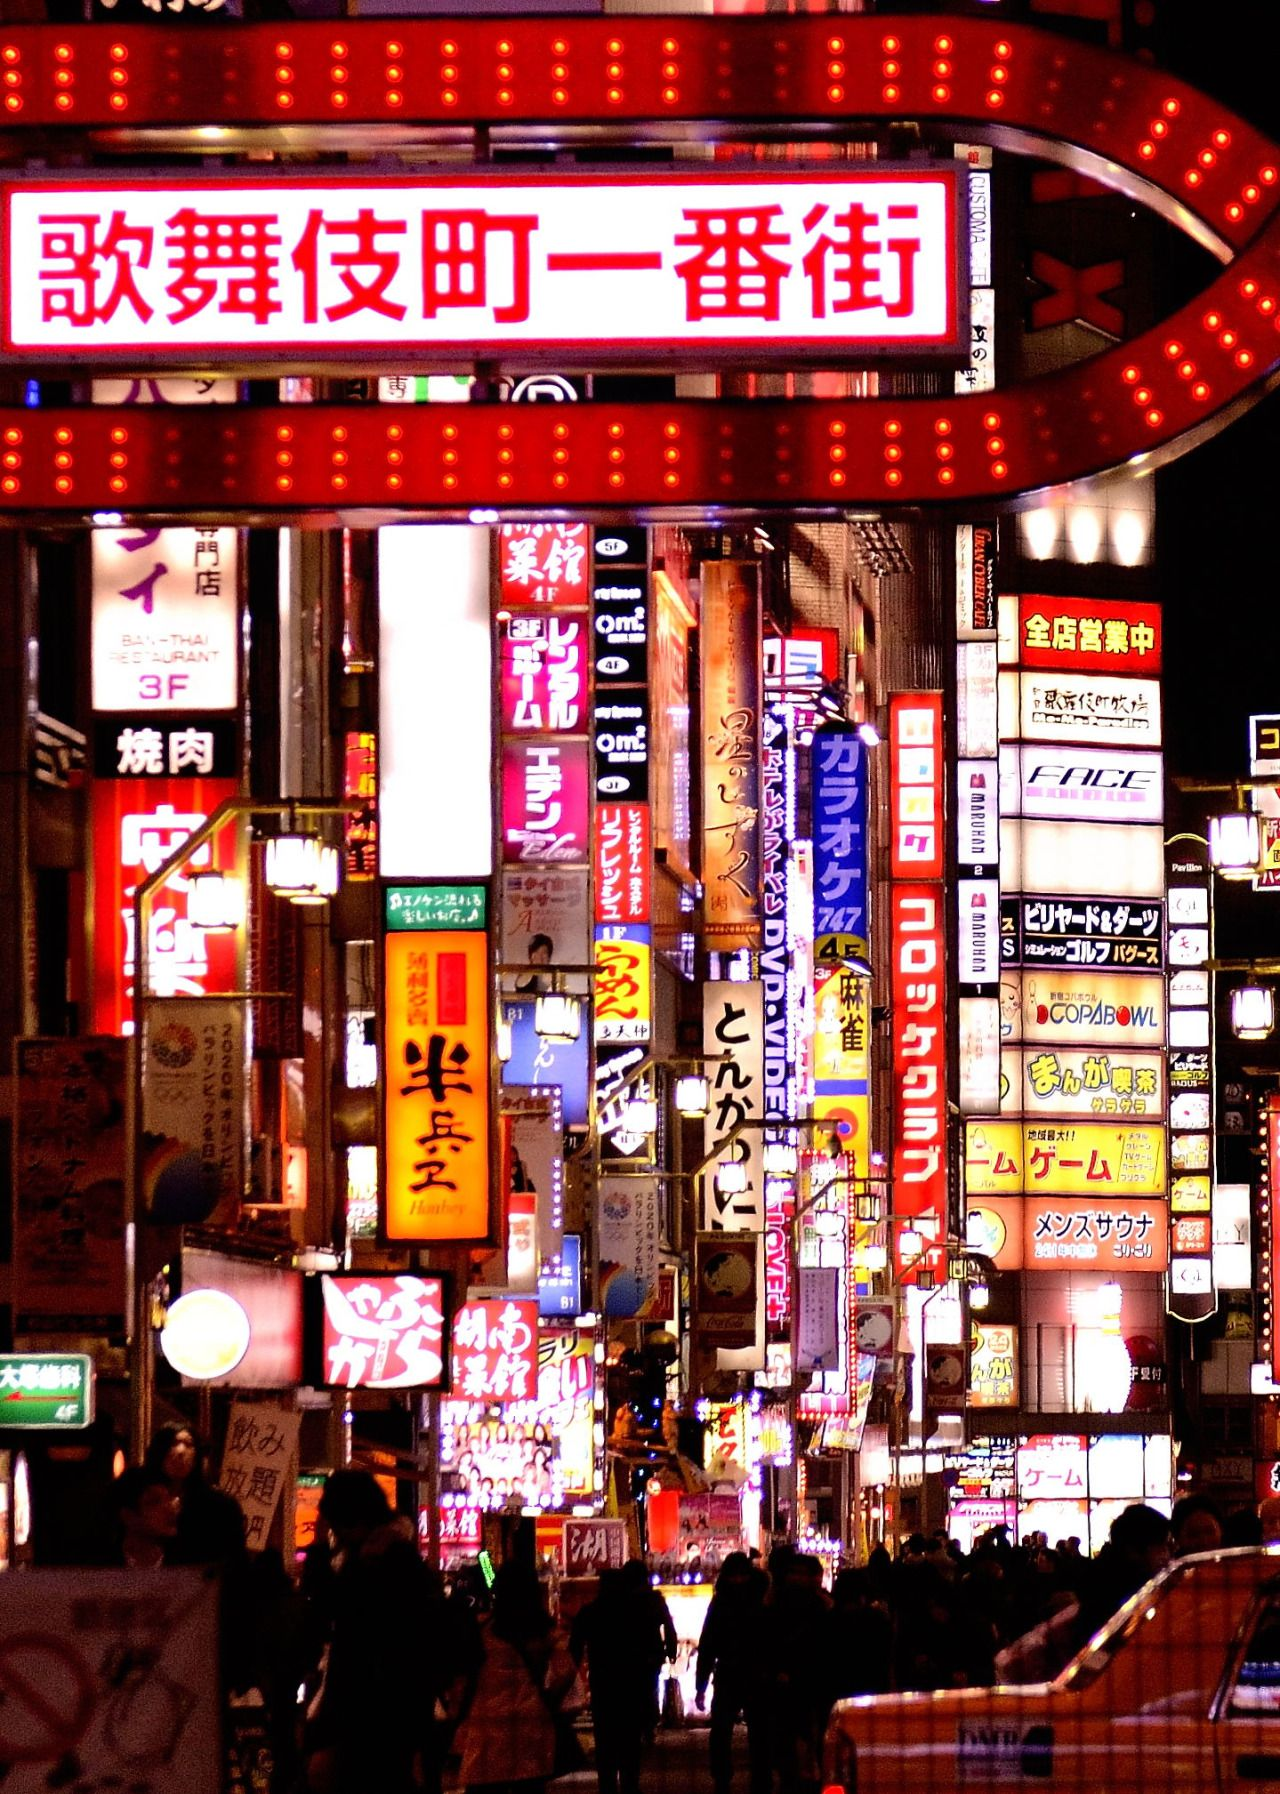 Iuramaroni Kabukicho Is Flashy Downtown But Chinatown Is More